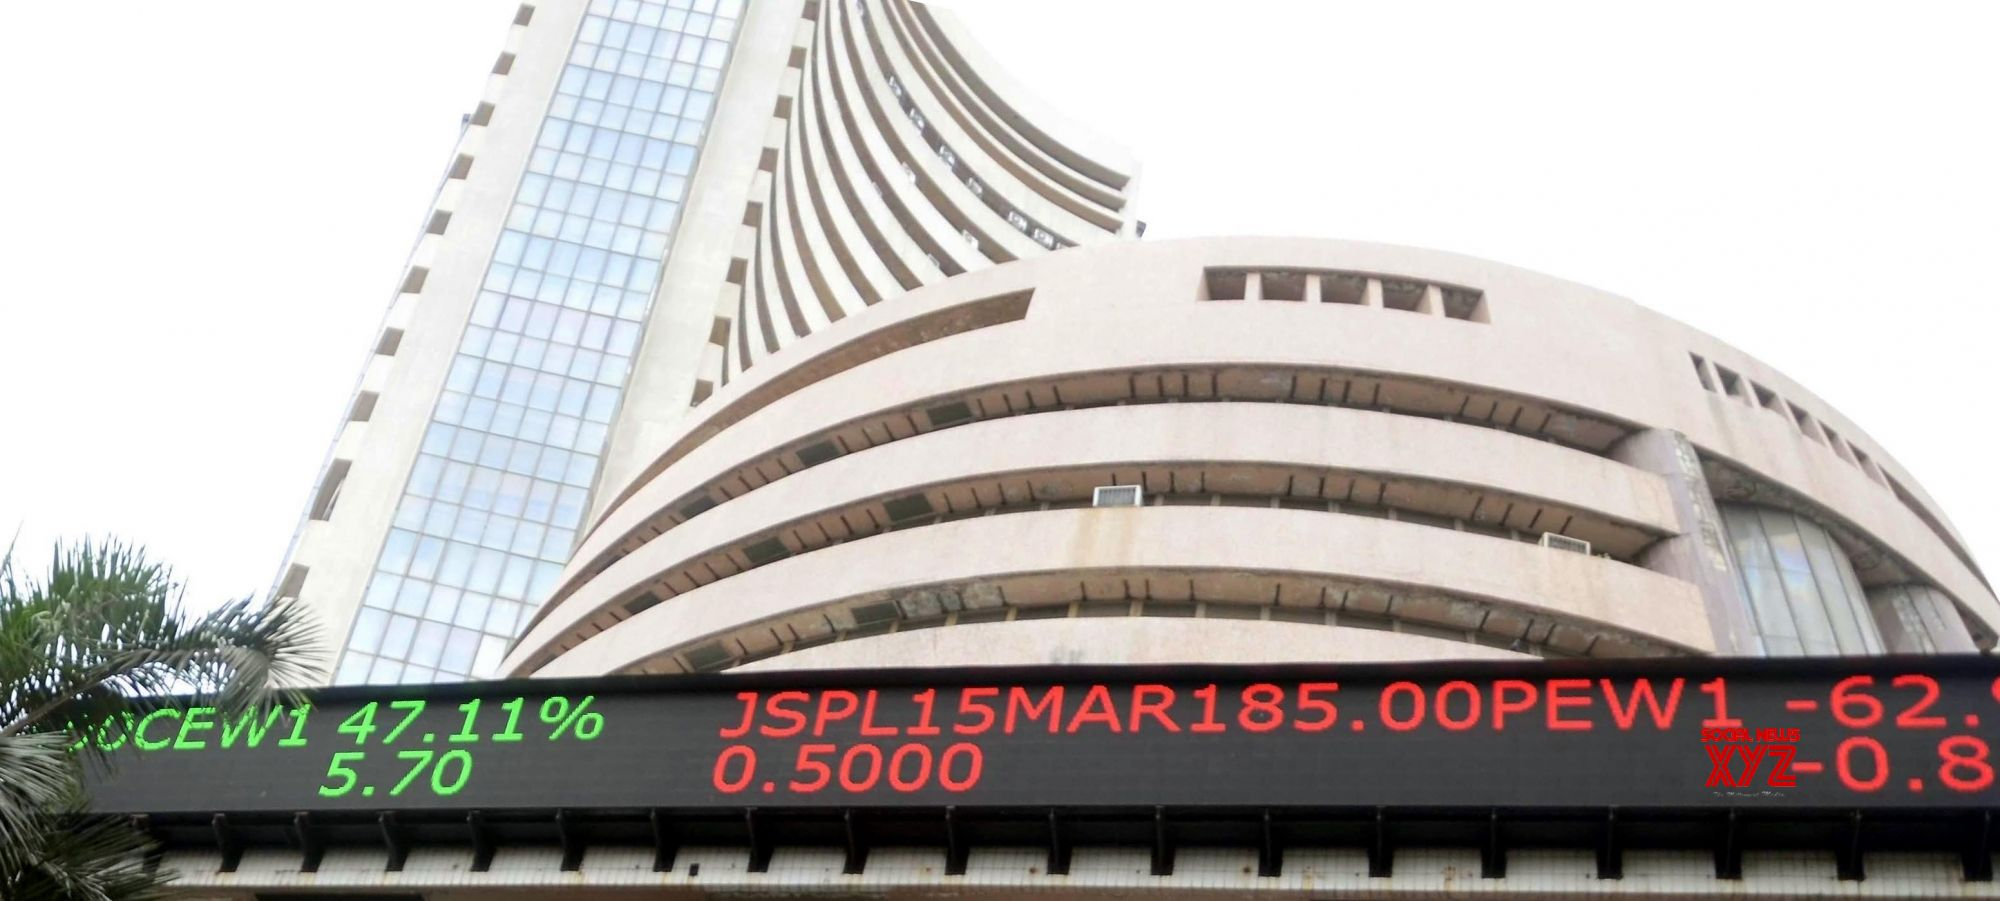 Sensex tanks over 570 points fearing oil output cut, trade war